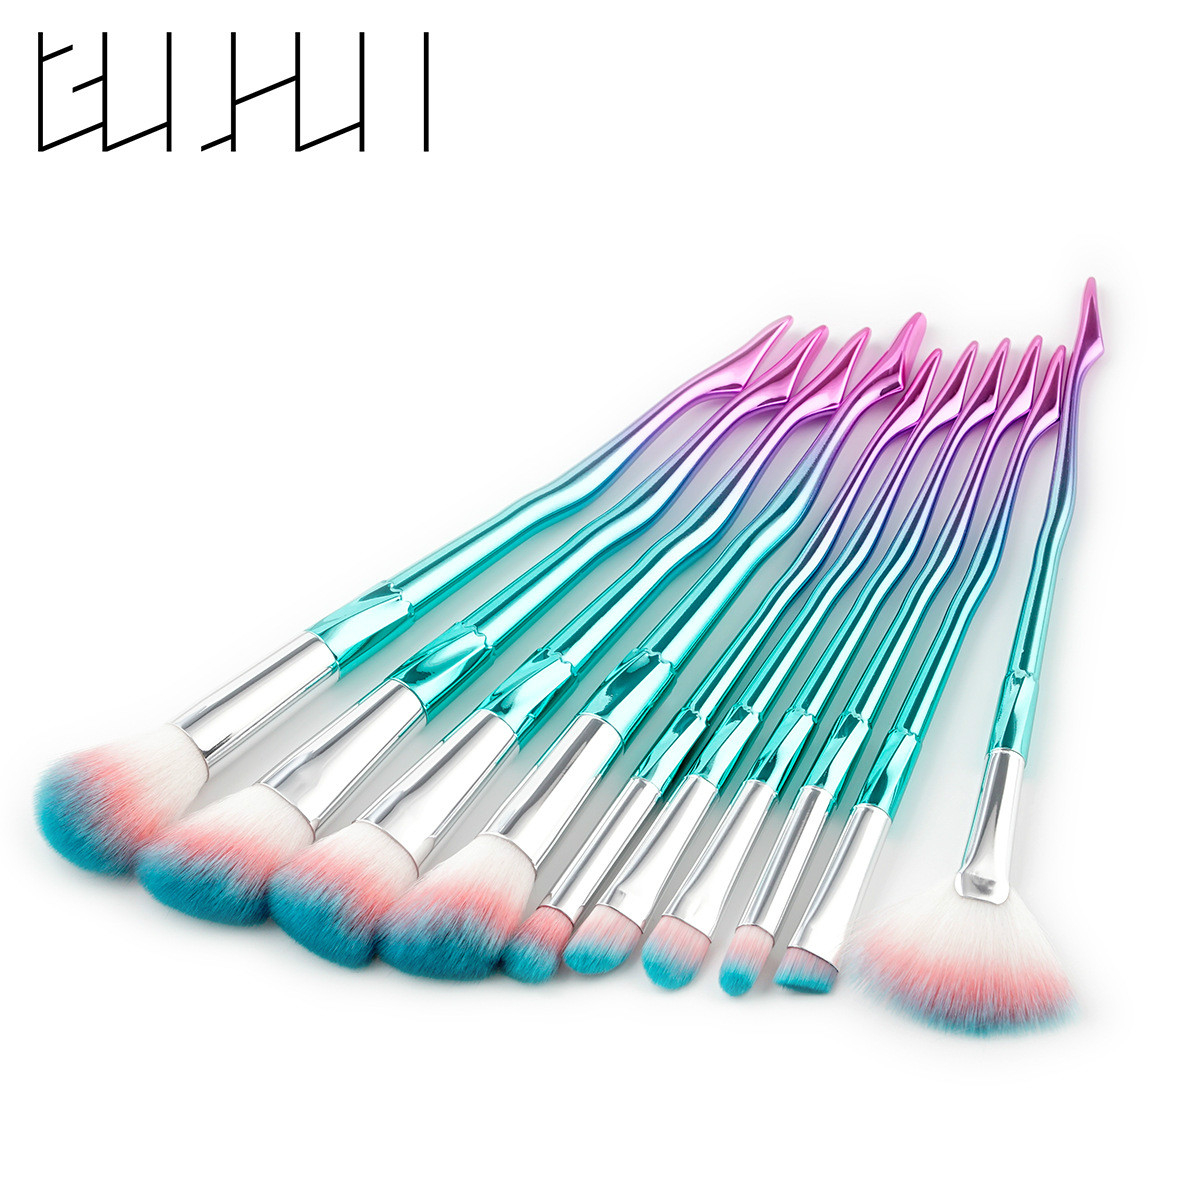 10 Make-up Brush, Leg Suit and Make-up Tool New Product Set Brush Color Make-up Factory GUJHU тушь make up factory make up factory ma120lwhdr04